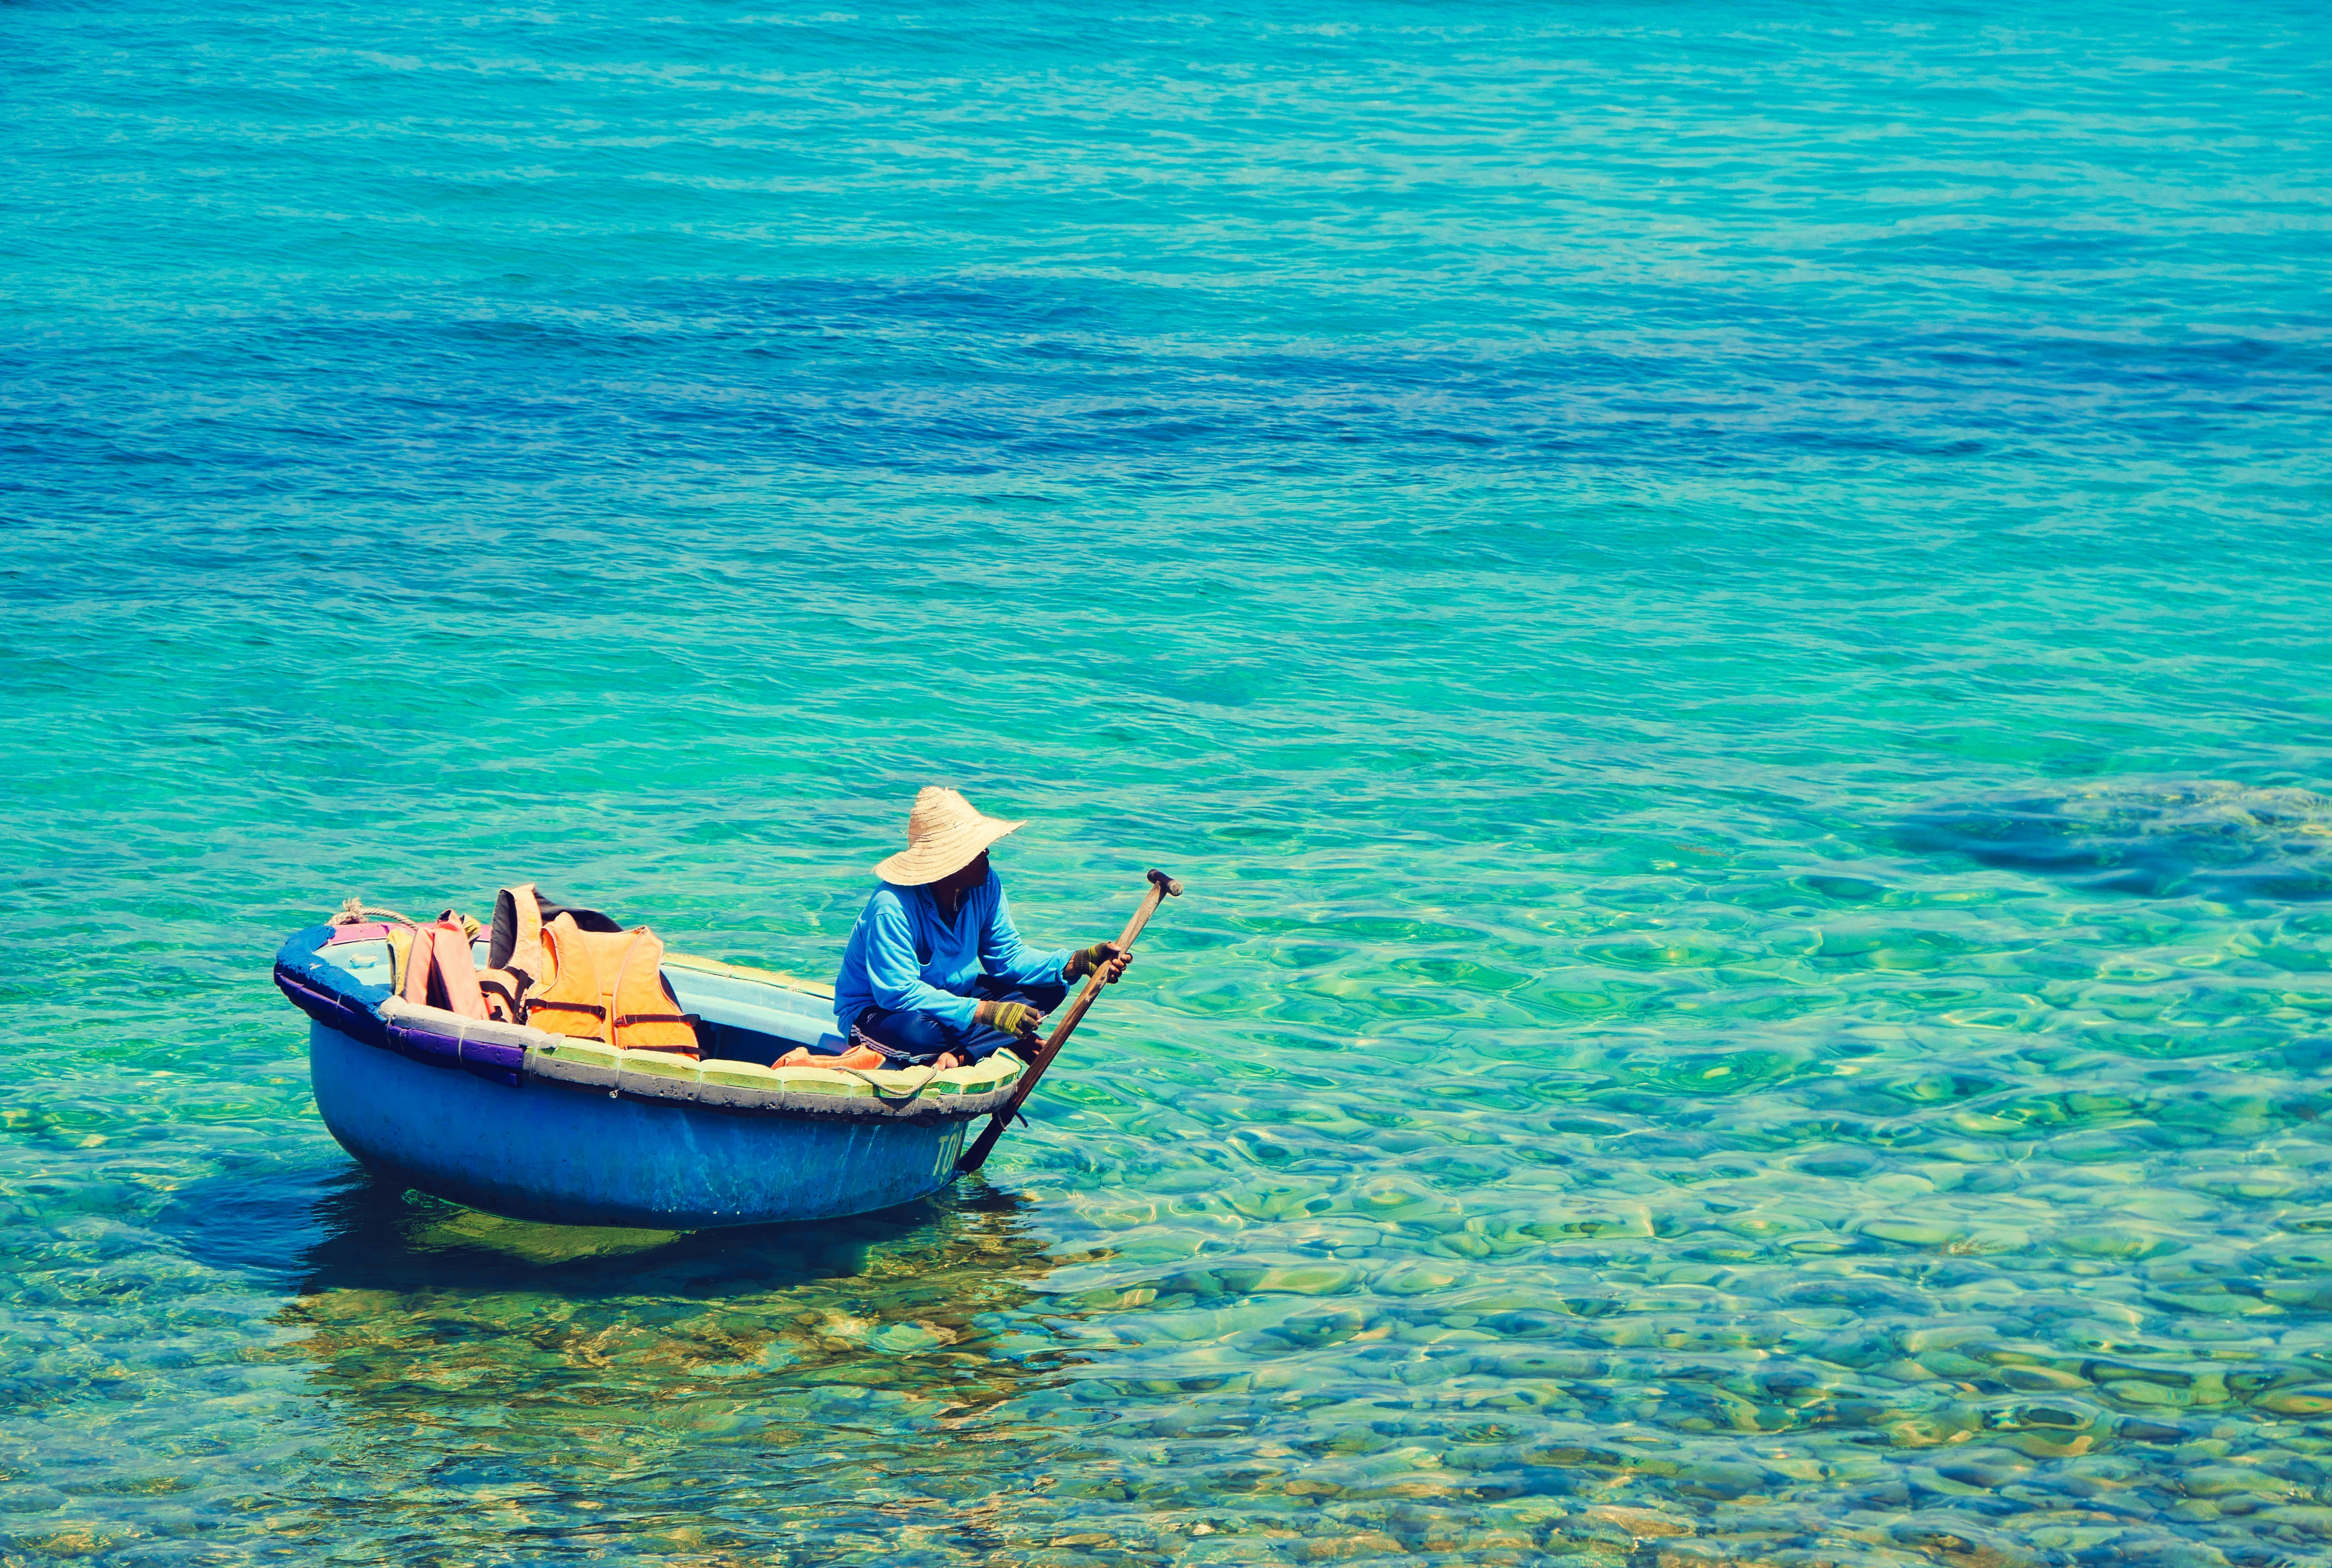 person riding blue boat on body of water